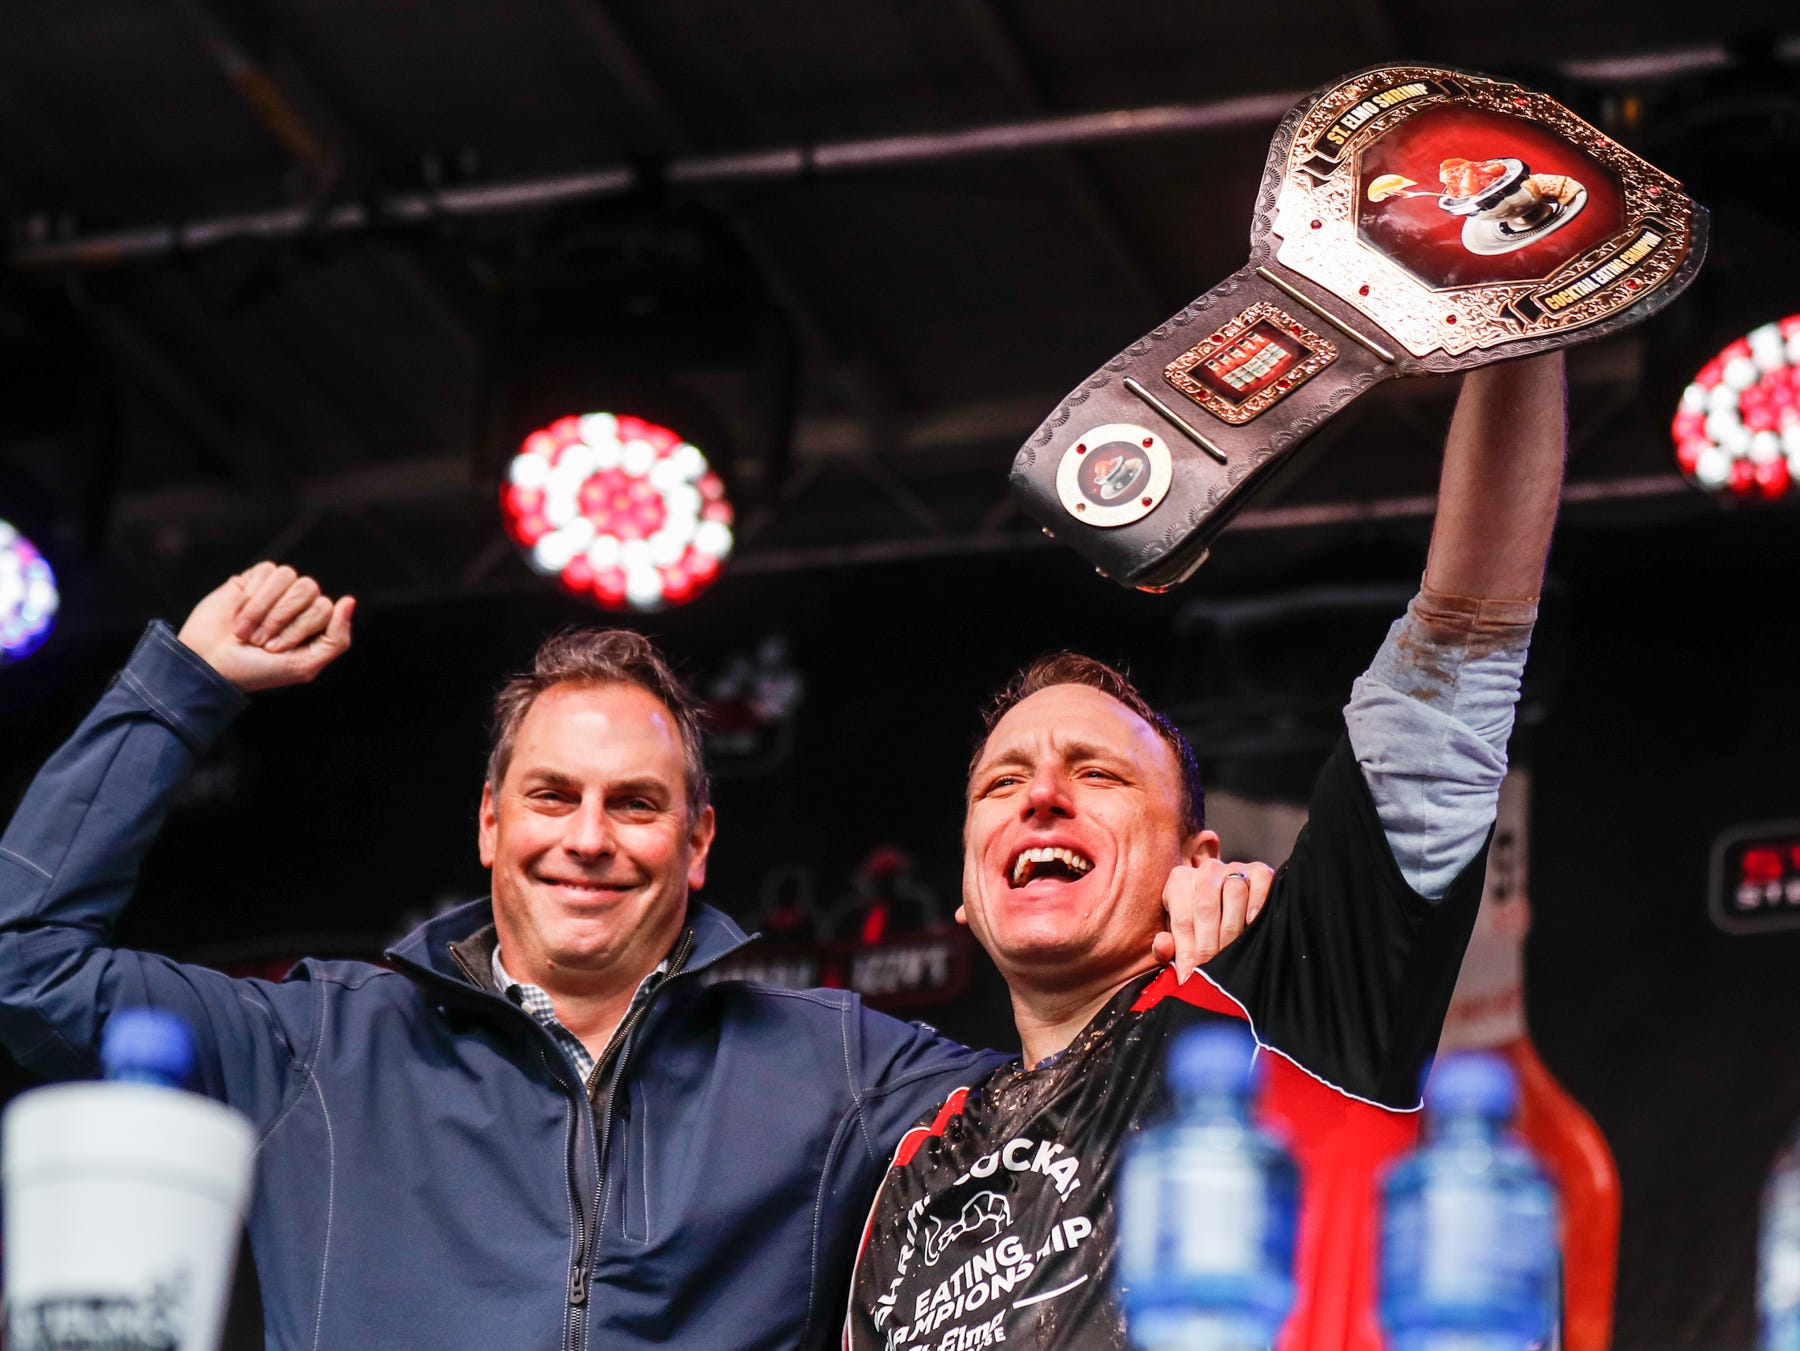 St. Elmo's owner Craig Huse, left, awards Major League Eater, and contest winner Joey Chestnut, right, the championship belt during the sixth annual World Famous St. Elmo Shrimp Cocktail Eating Championship, held during the Meijer Tailgate Party on Georgia St. in Indianapolis on Saturday, Dec. 1, 2018.